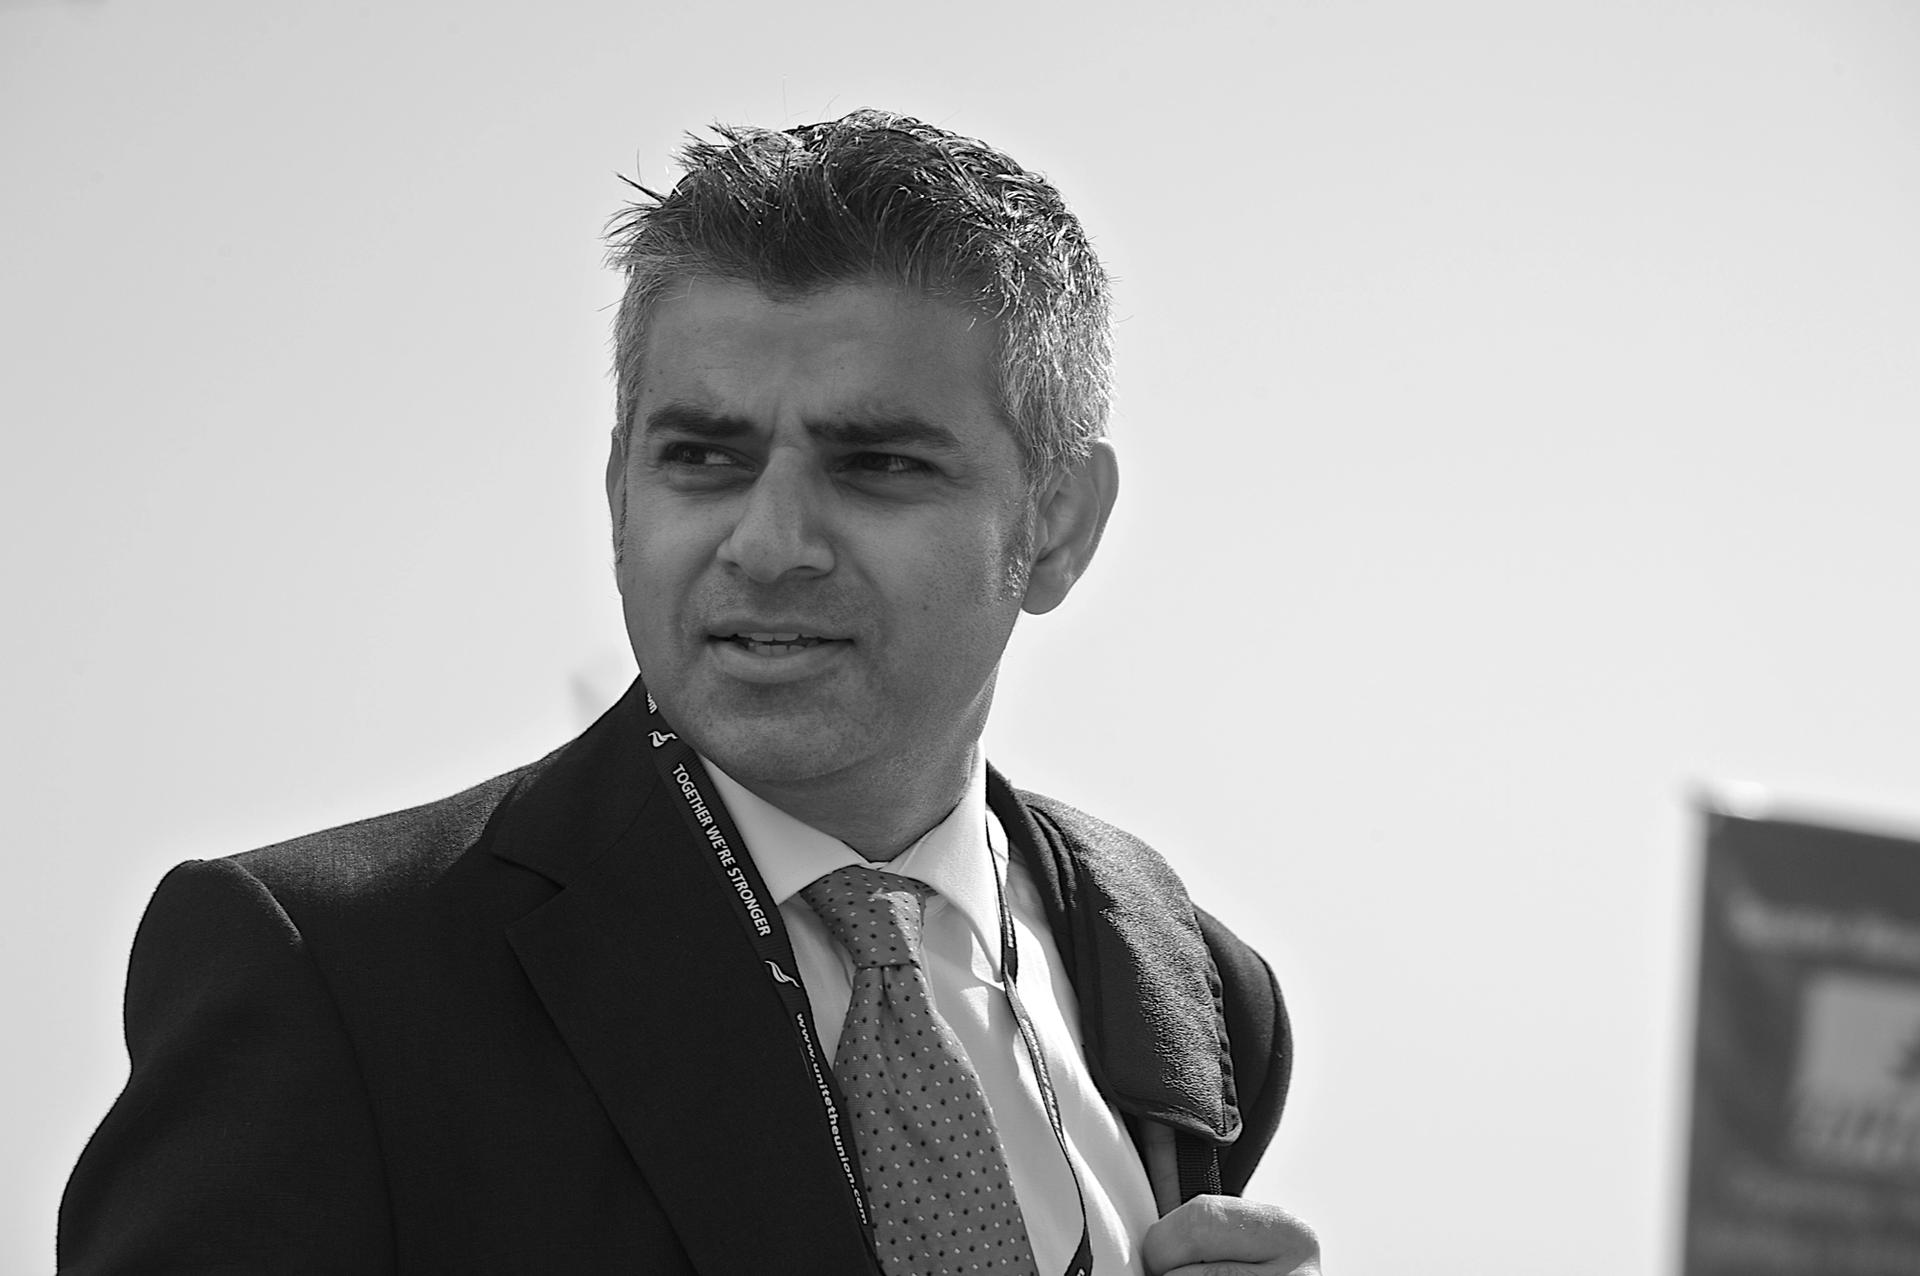 """London Mayor Sadiq Khan said that """"deepening our understanding of the past [can] strengthen our commitment to fight racism"""""""